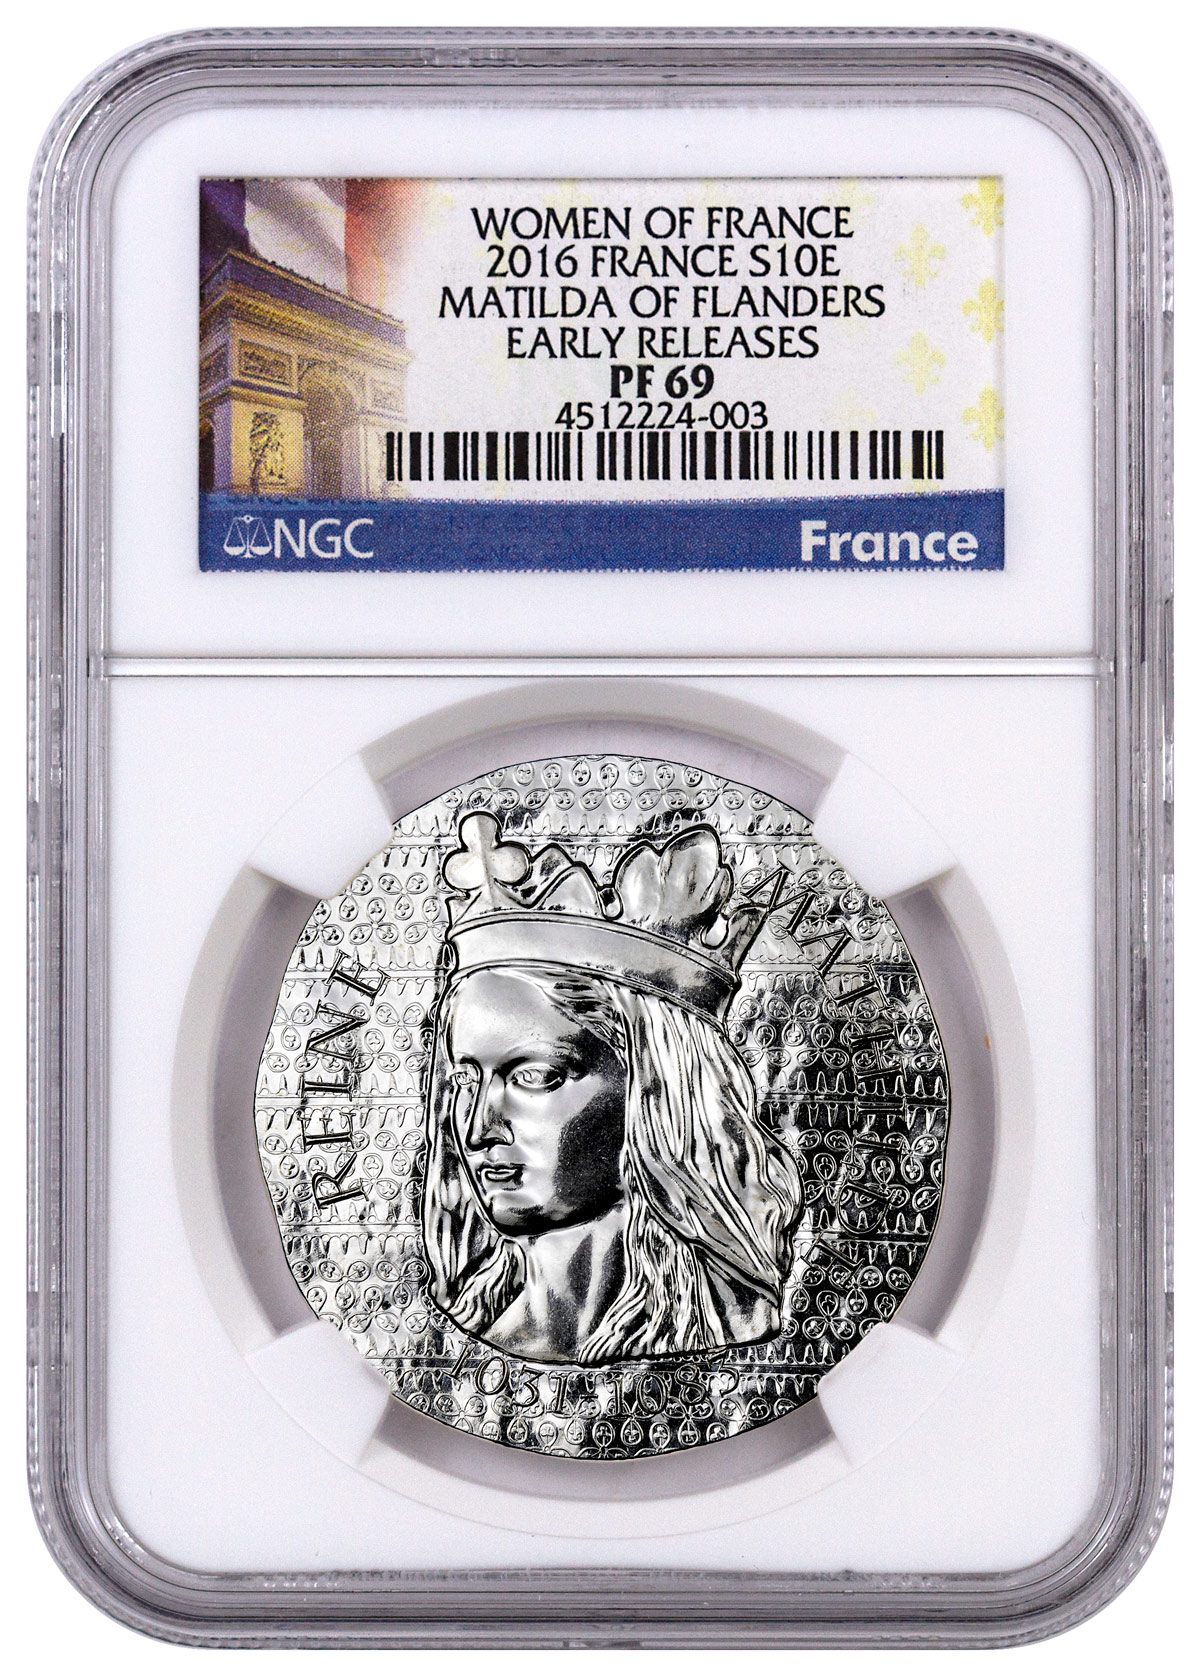 2016 France Women of France - Matilda of Flanders Silver Proof €10 Coin NGC PF69 ER (Exclusive France Label)